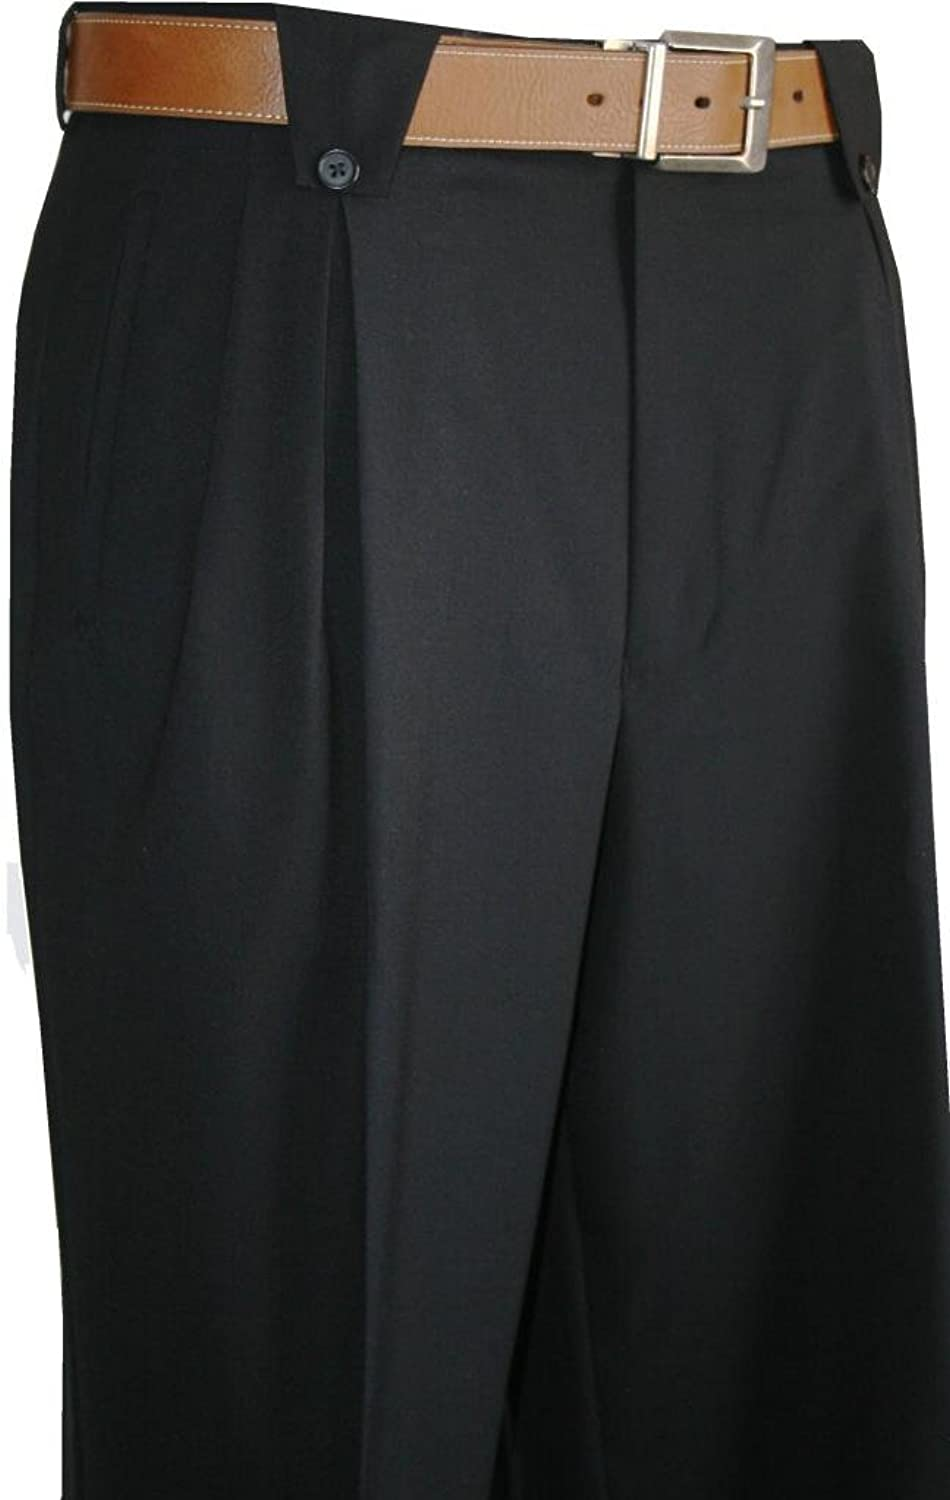 1940s Trousers, Mens Wide Leg Pants Wide Leg Mens Pants Black $99.00 AT vintagedancer.com